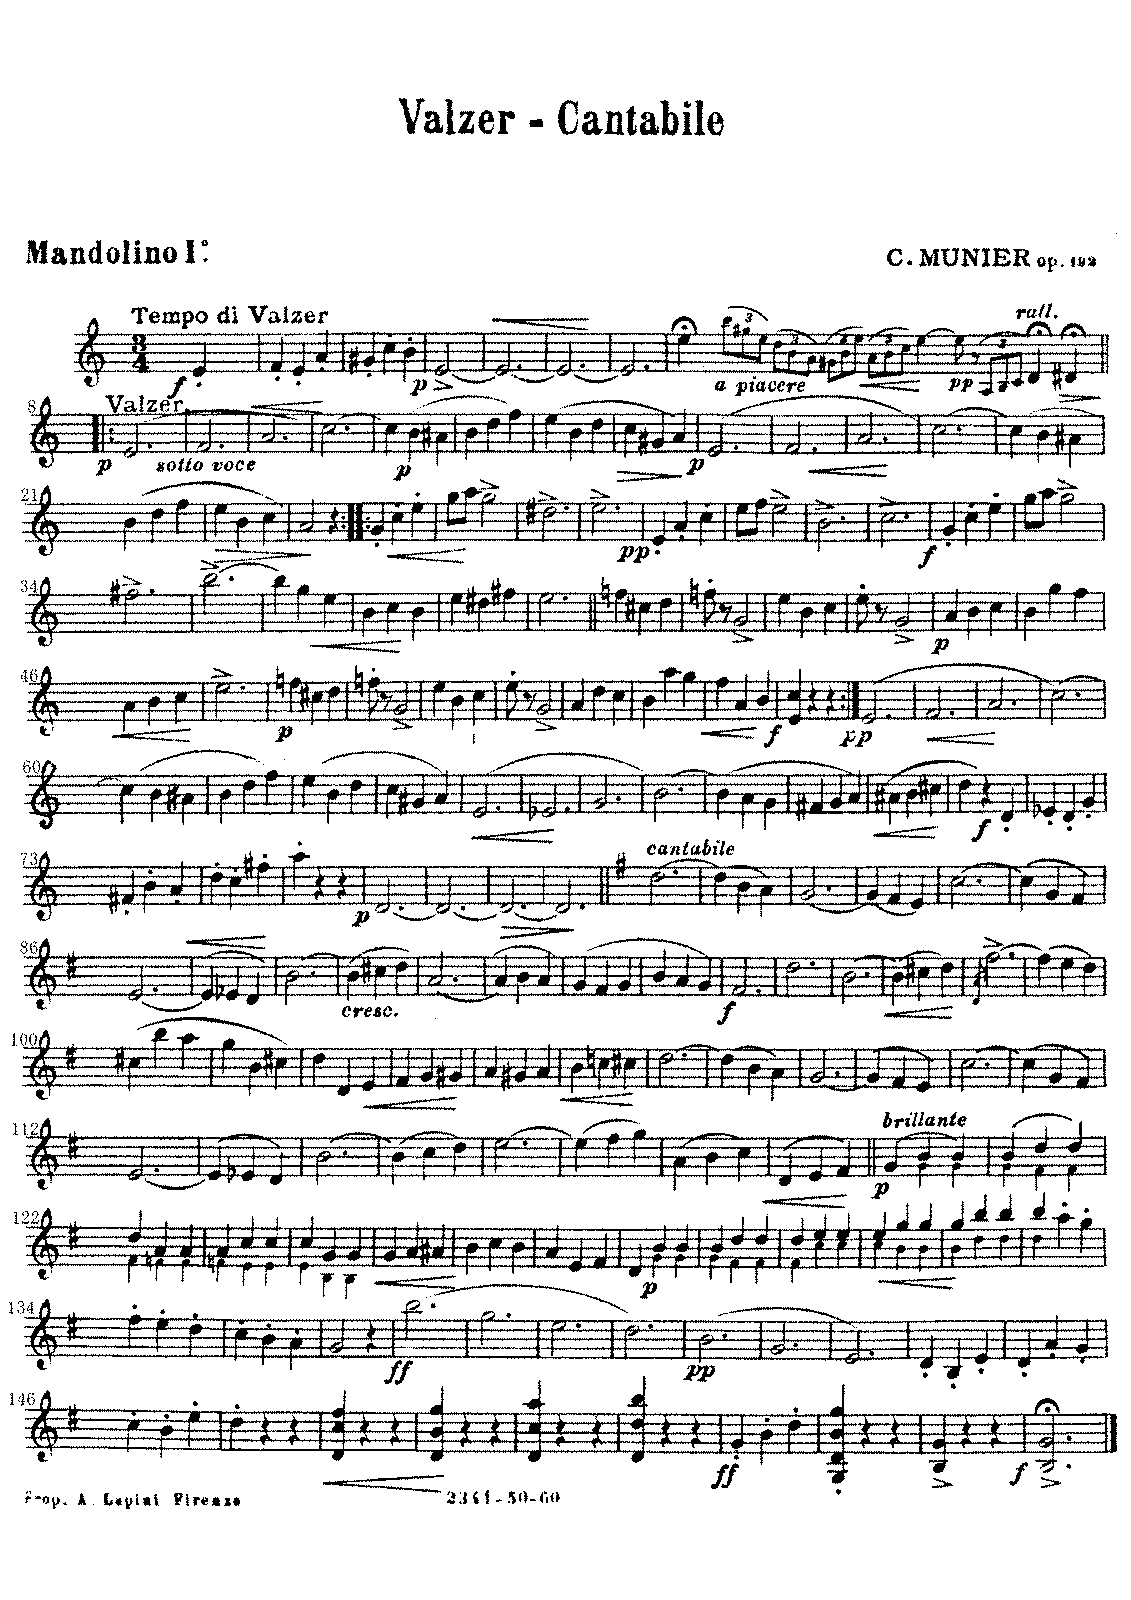 PMLP656846-Valzer - Cantabile, Nelly Album Ⅲ.Valzer - Cantabile Op.192 C.Munier Mandolino 1º. part.pdf